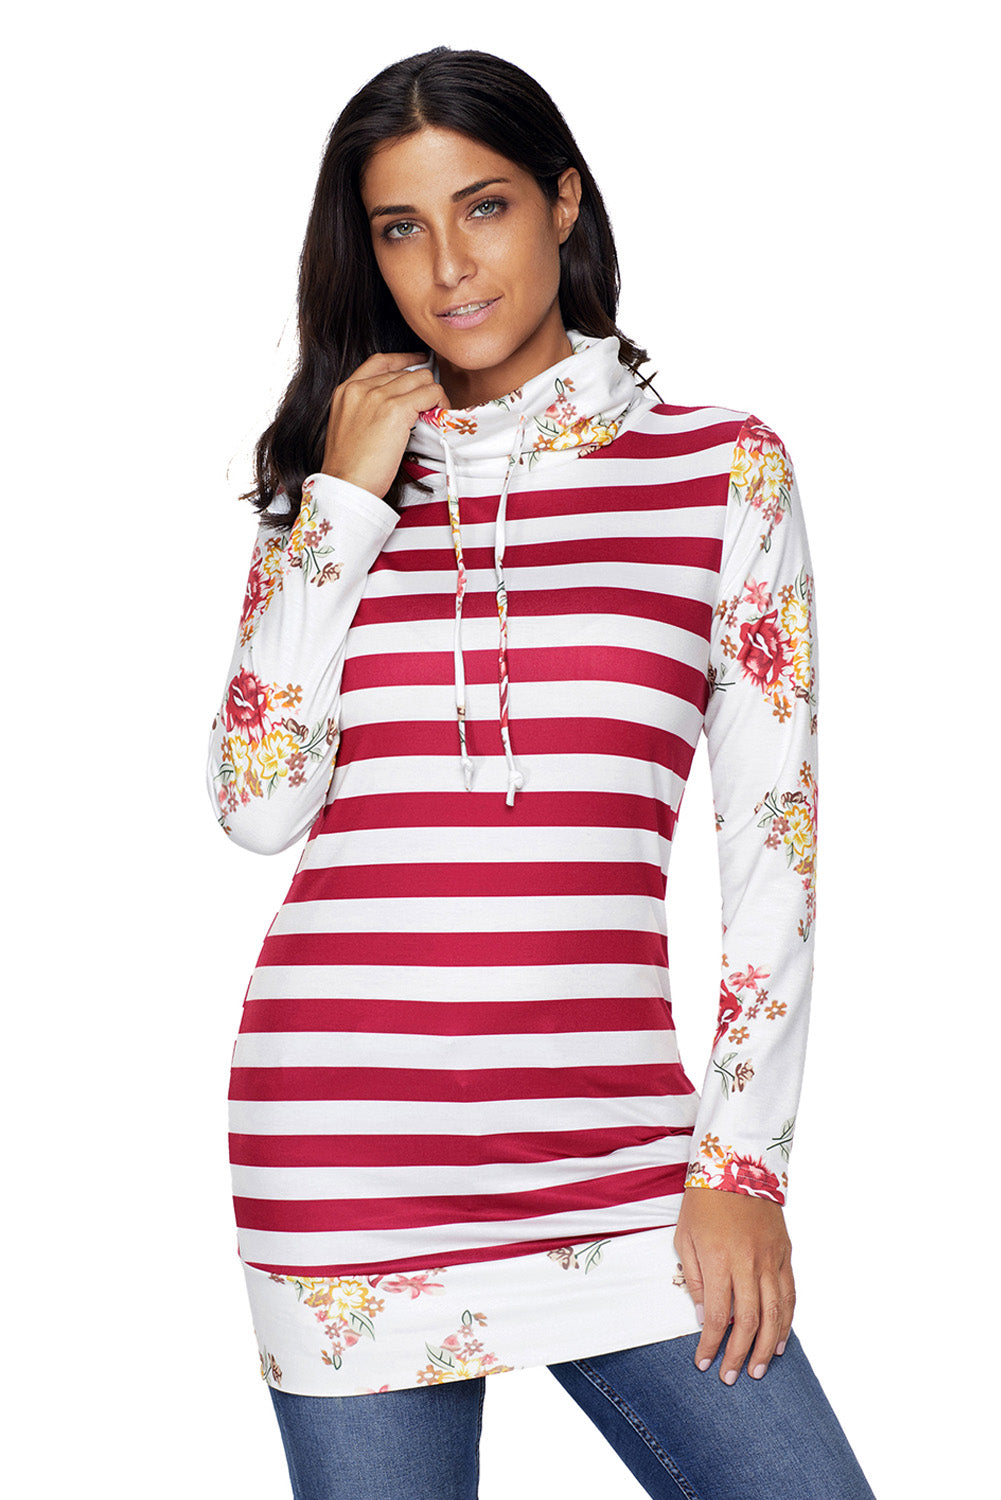 Chicloth Burgundy Striped and Floral Sweatshirt